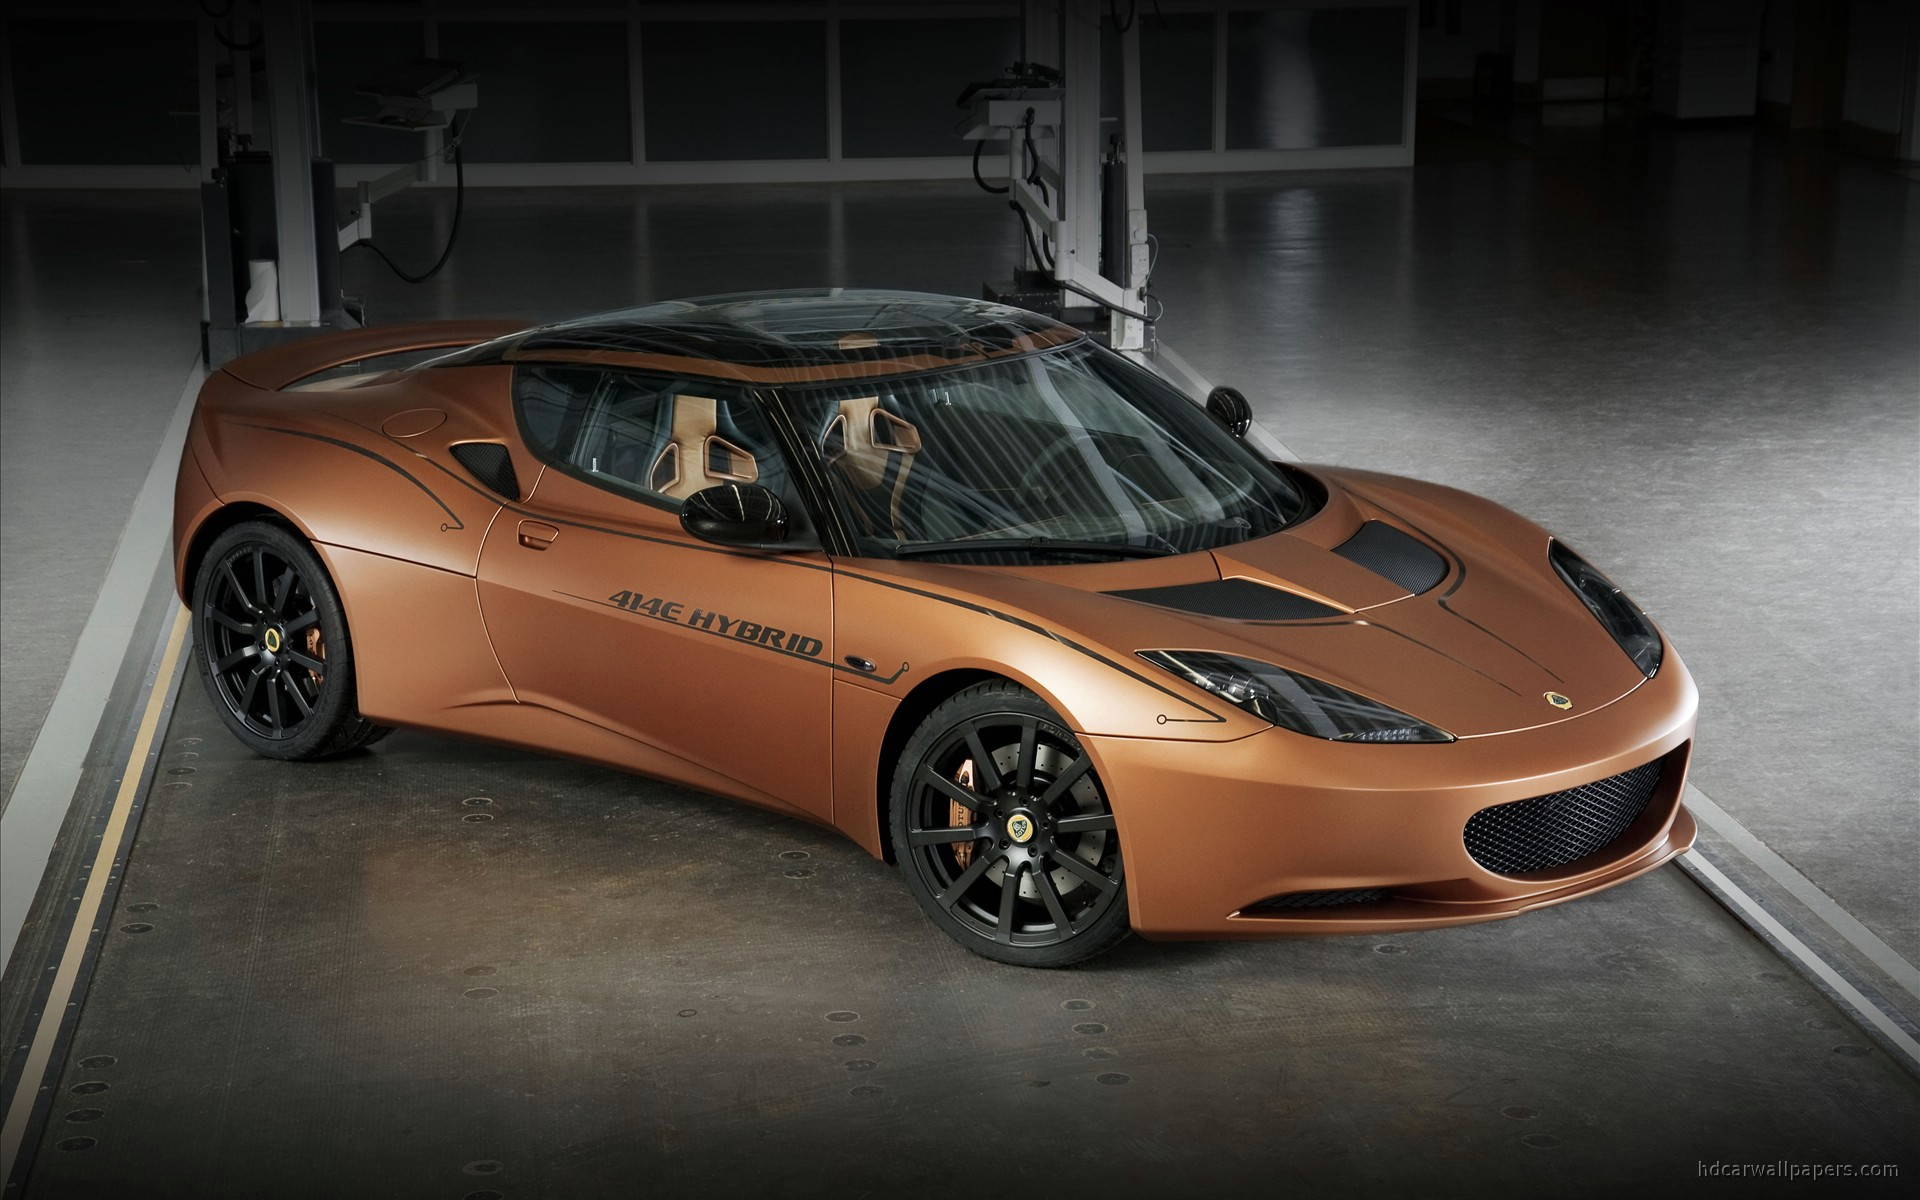 2010 lotus evora 414e hybrid wide